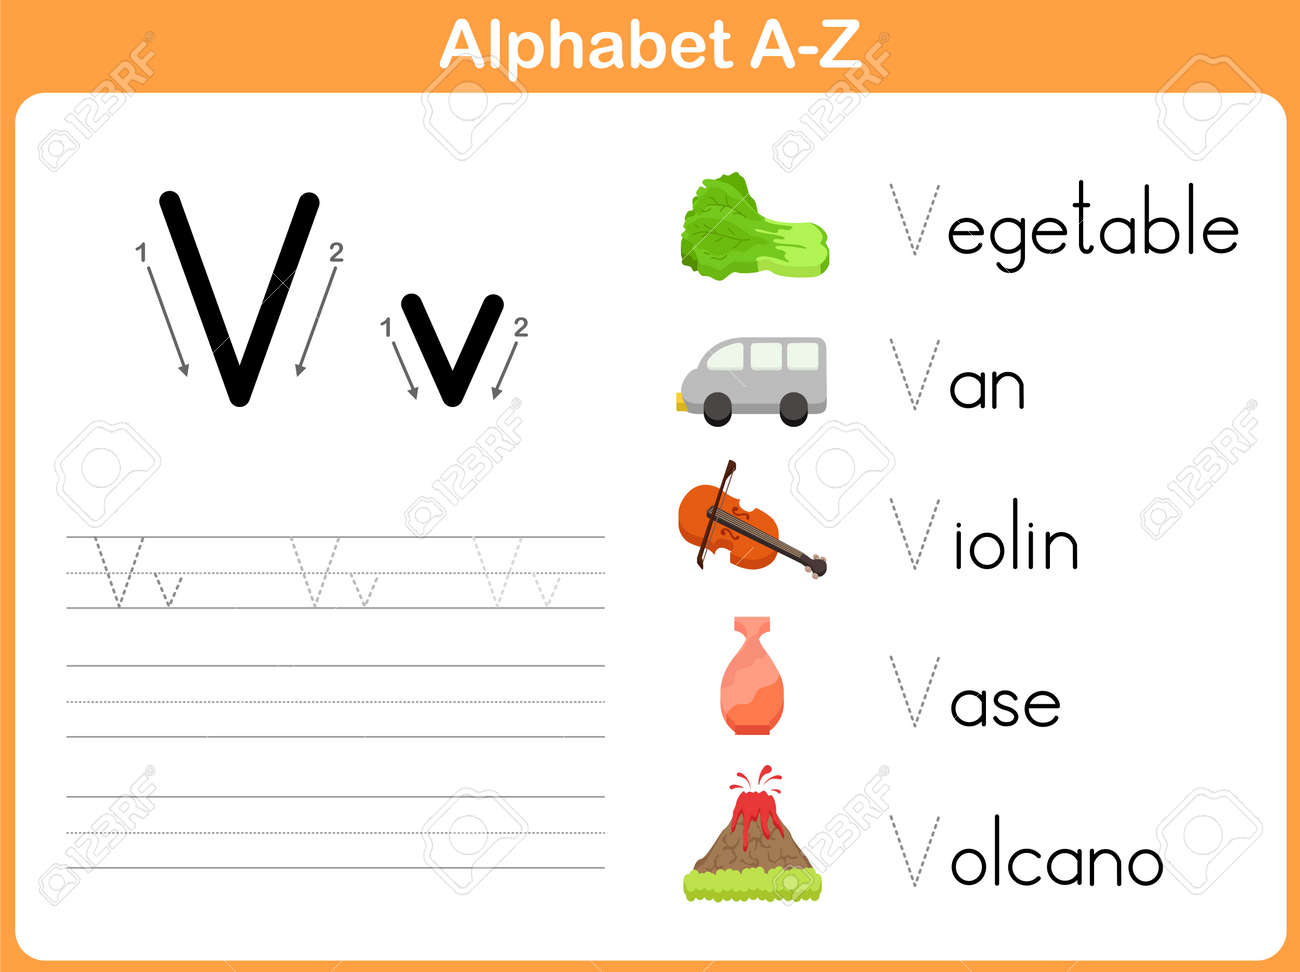 Printable Alphabet Tracing Worksheets A Z  April Calendar  April  worksheets for teachers, printable worksheets, multiplication, free worksheets, and math worksheets Tracing Letters A Z Worksheet 972 x 1300